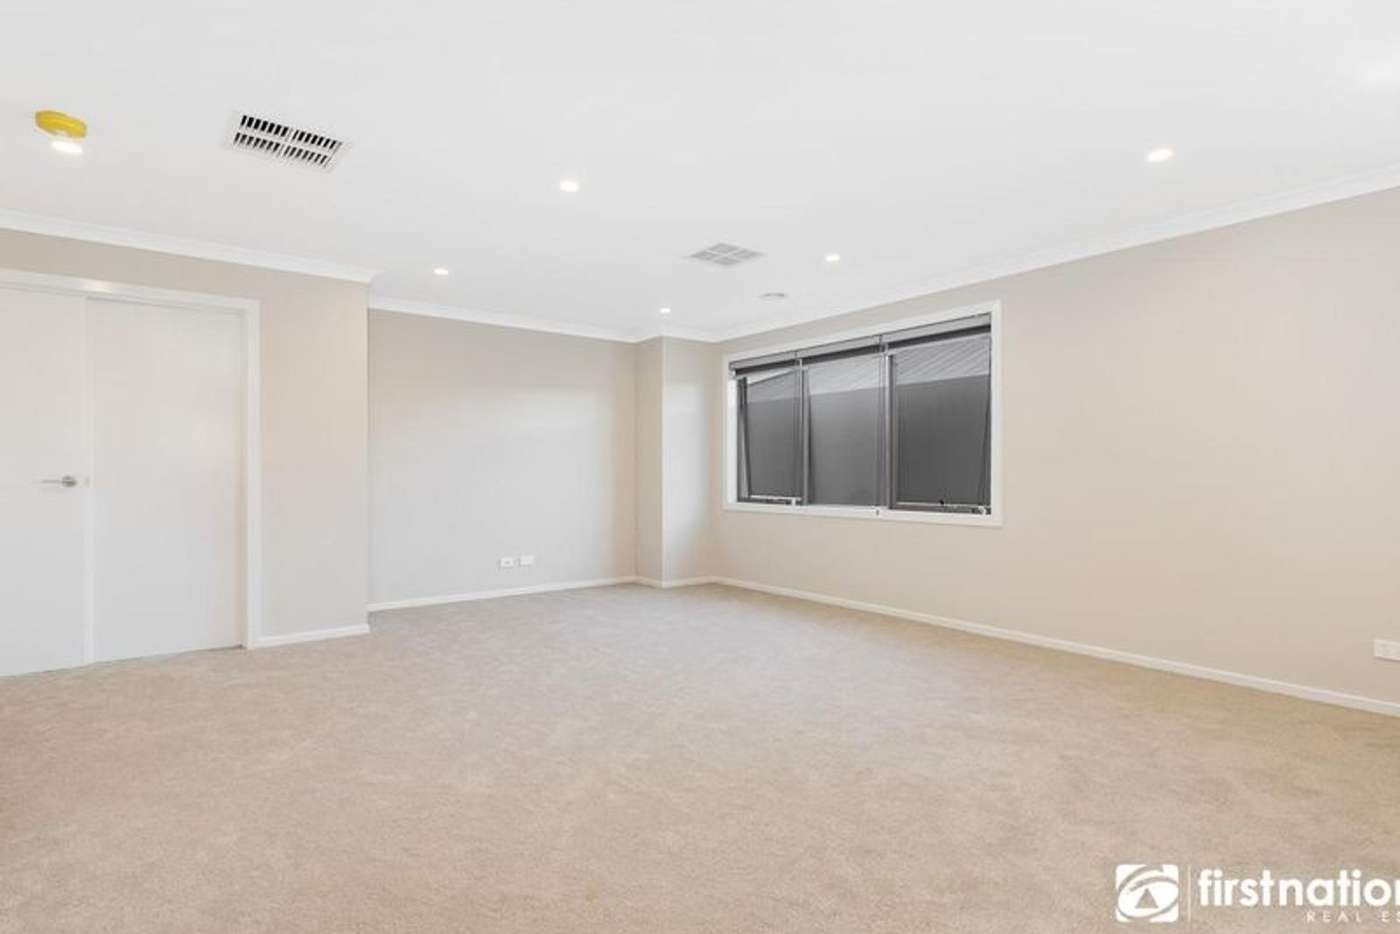 Sixth view of Homely house listing, 23 Viewside Way, Point Cook VIC 3030